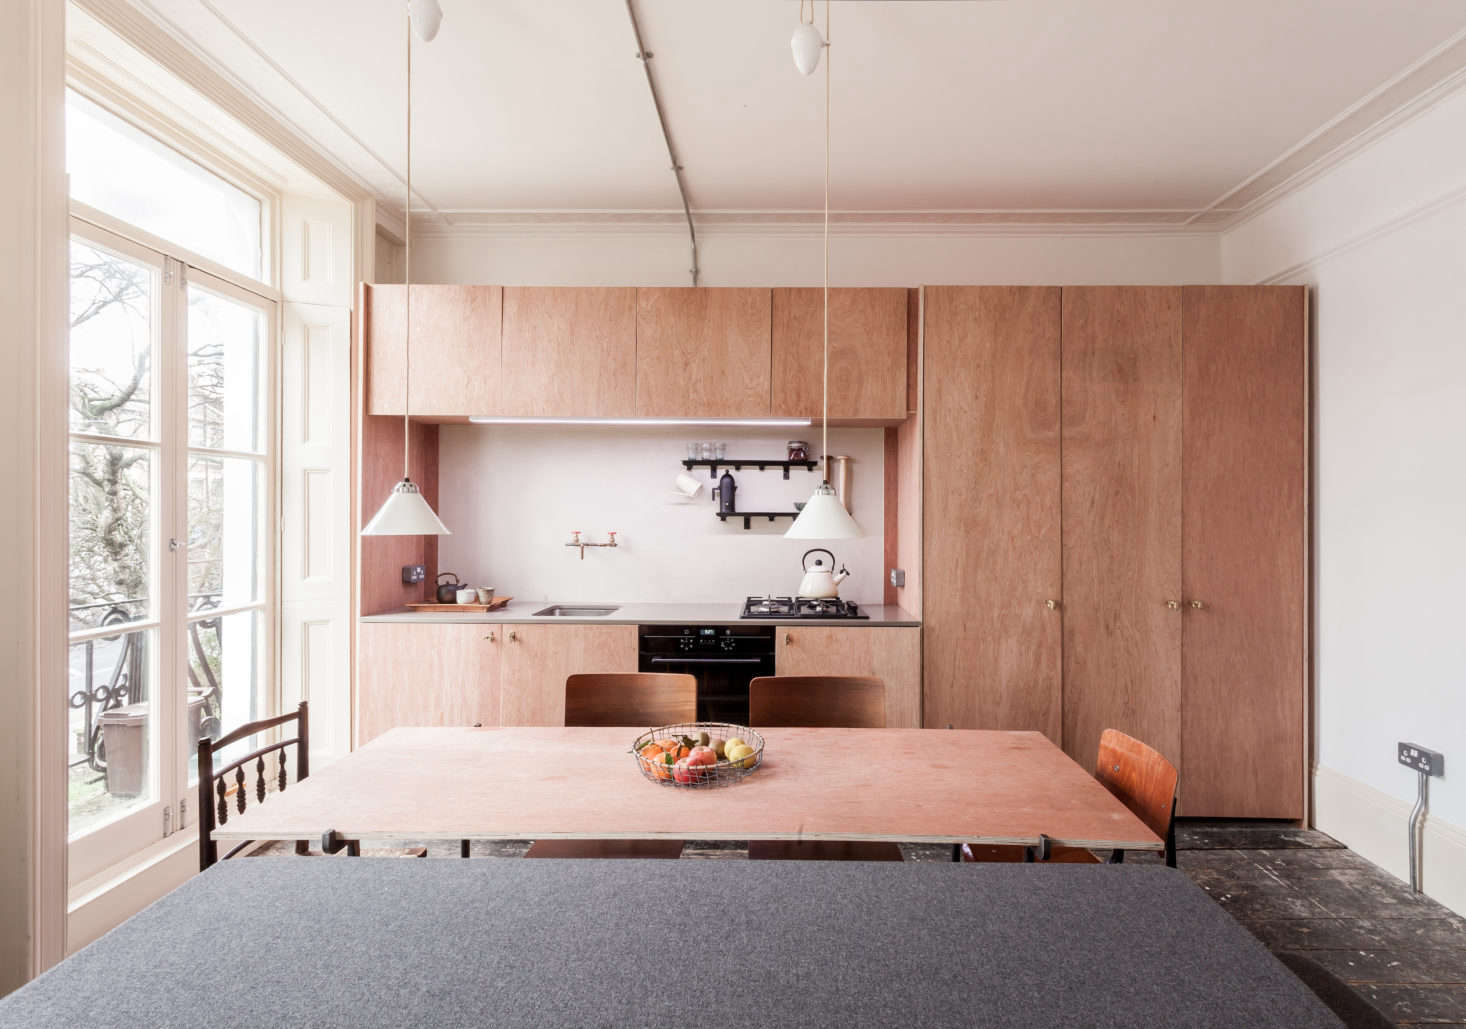 Plywood cabinets in a small kitchen open to dining and living area, designed by London architect Simon Astridge